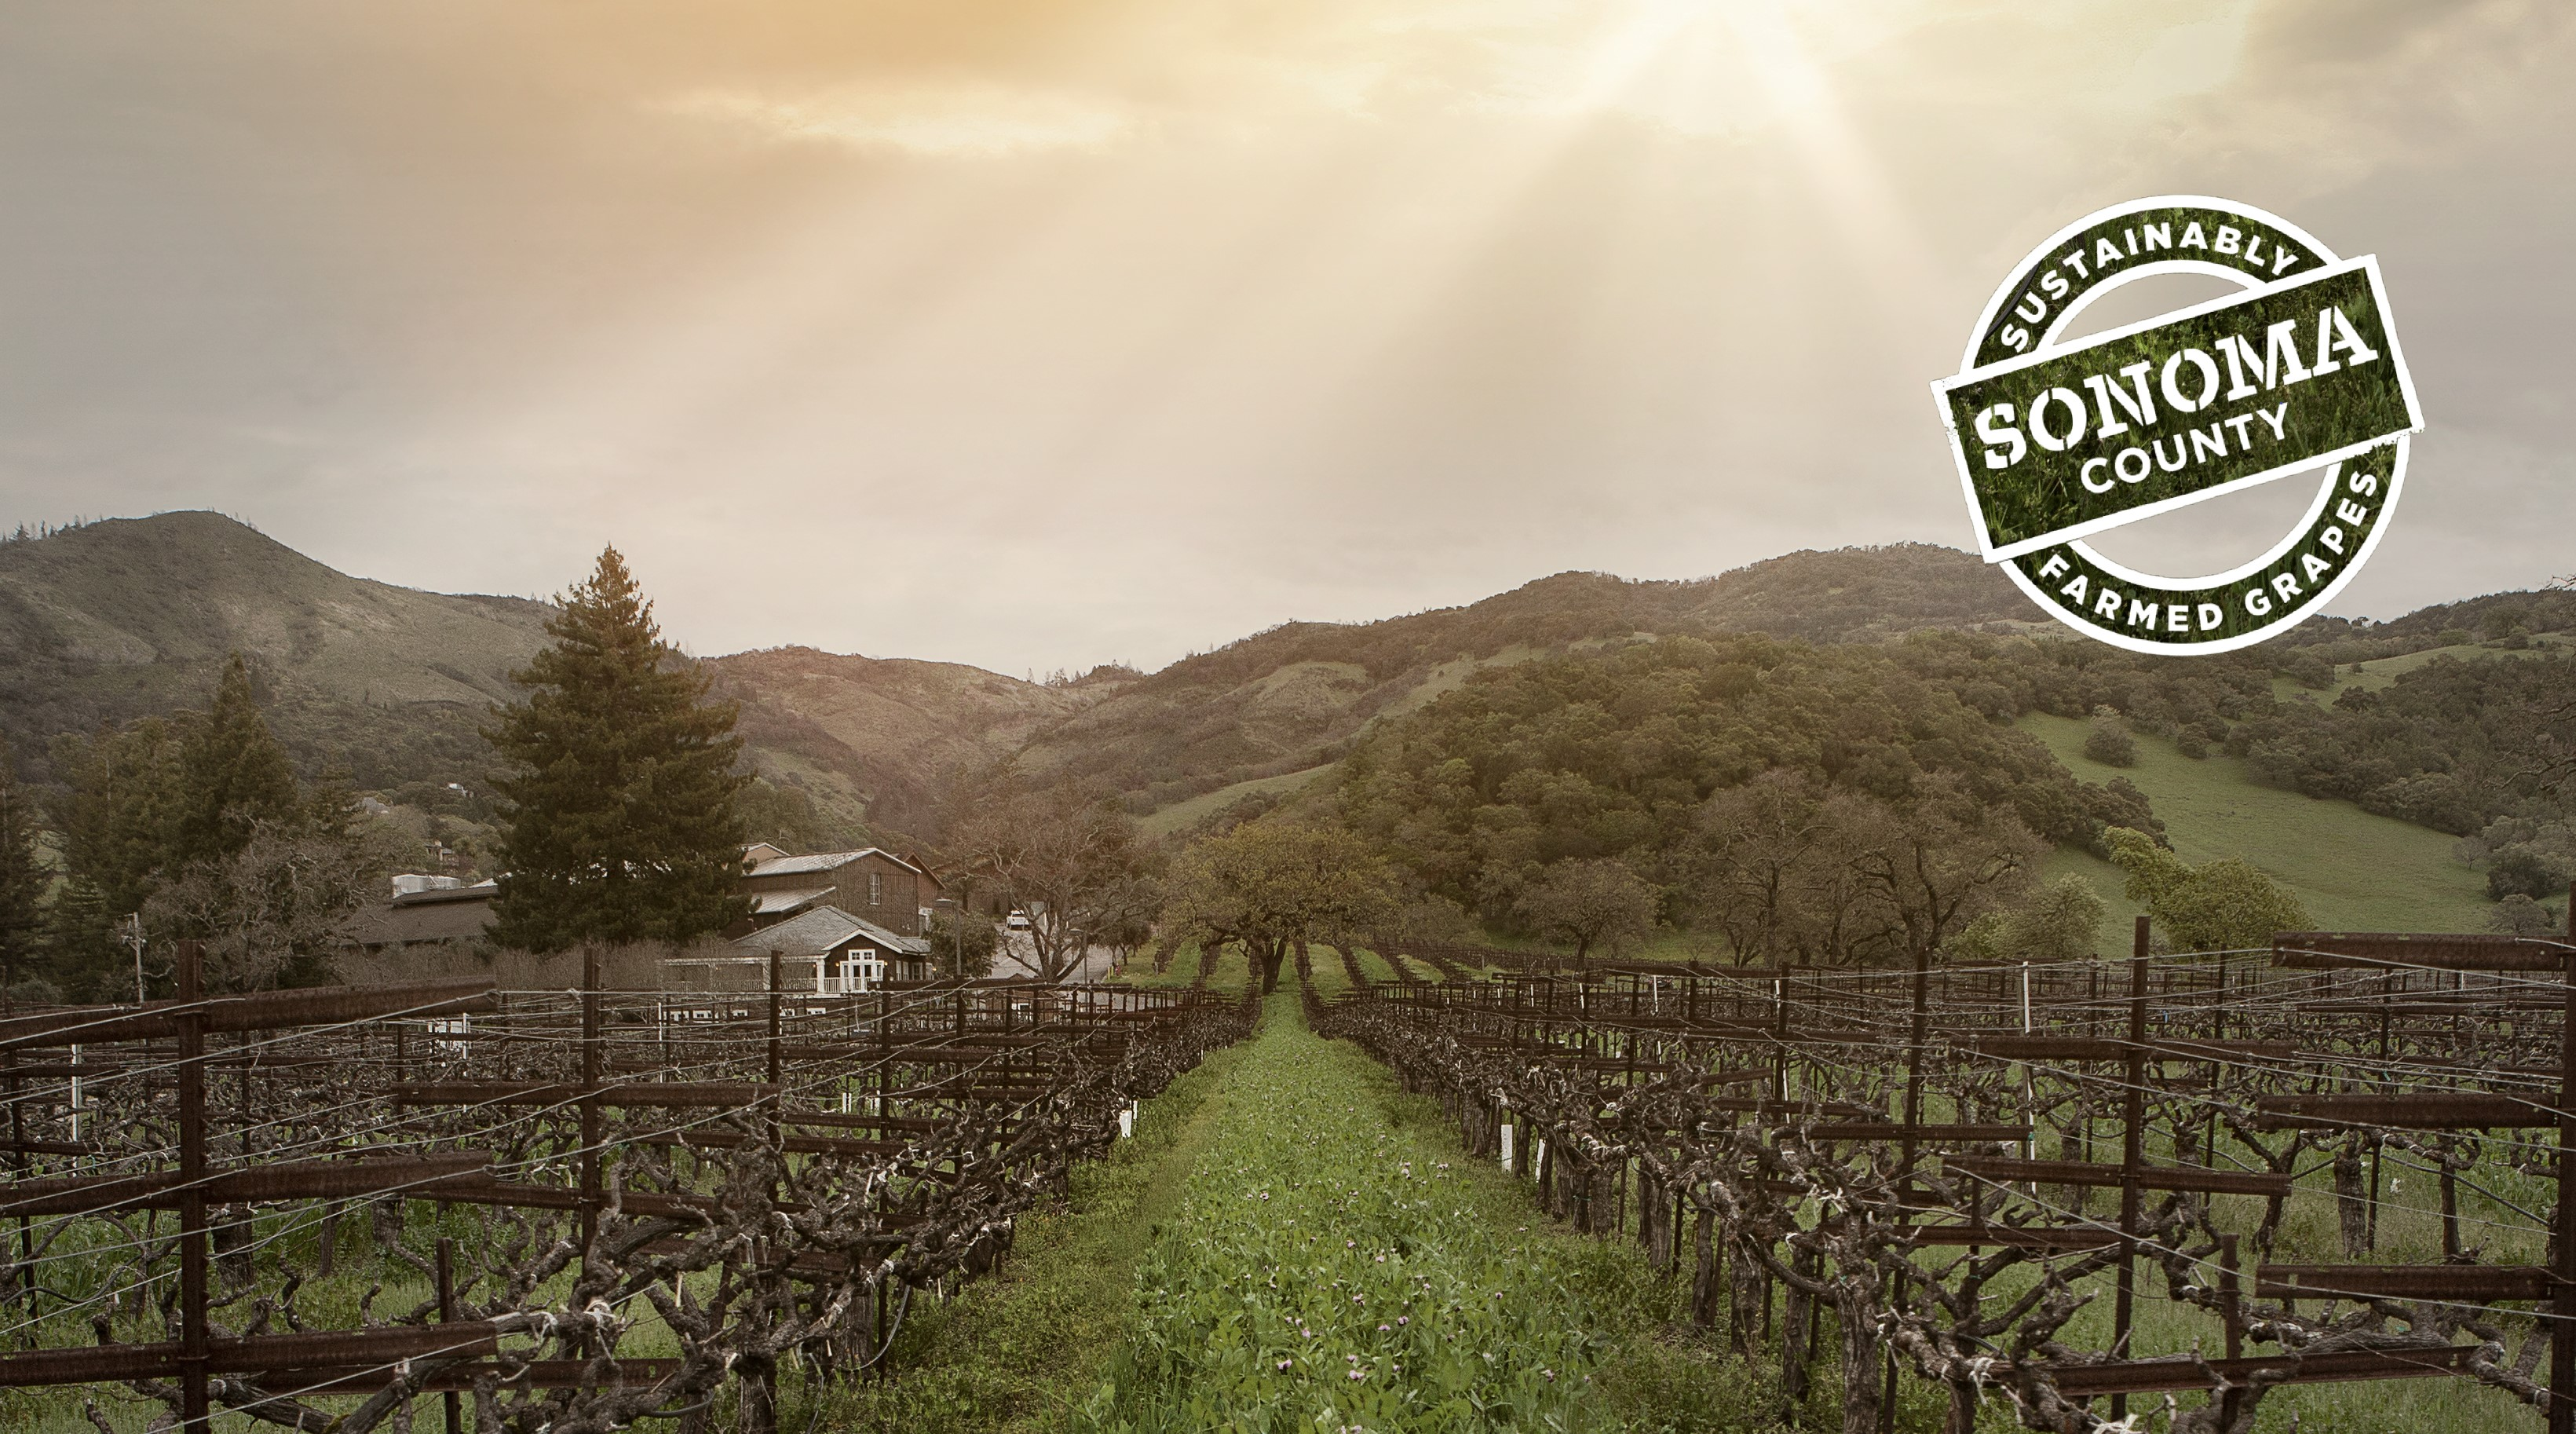 Our estate vineyards are proud to be Sonoma County Sustainable Certified